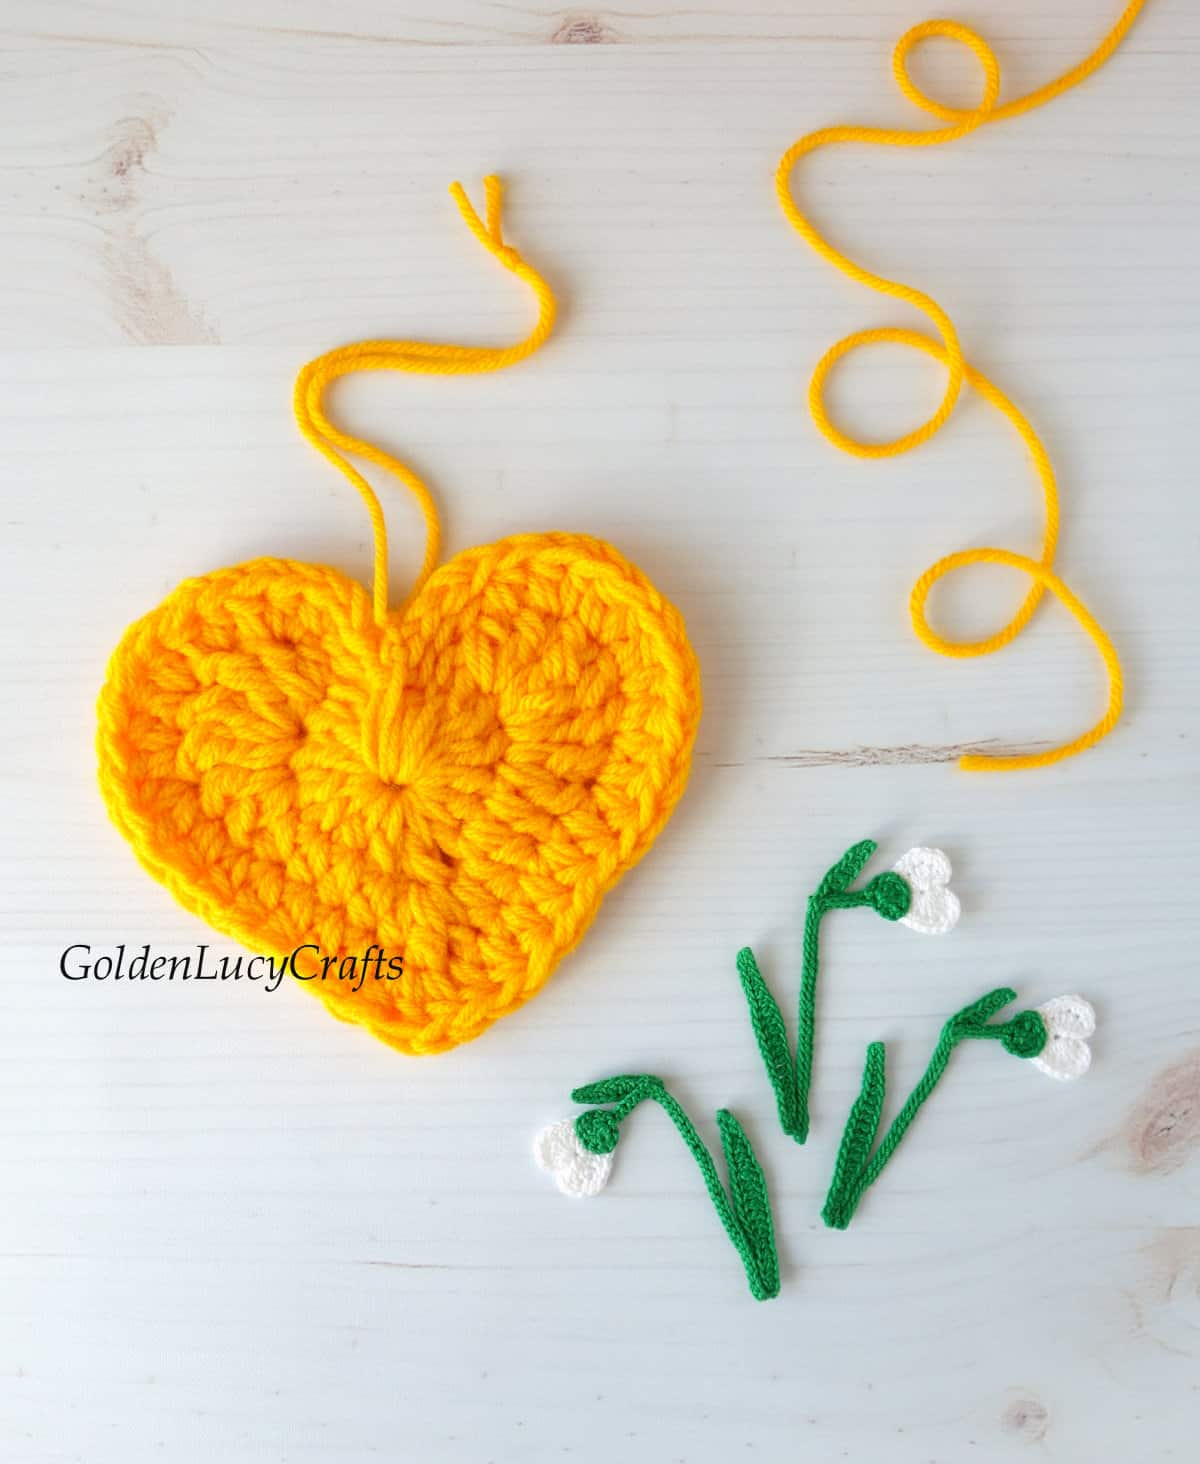 Crocheted yellow heart and crocheted snowdrop applique.